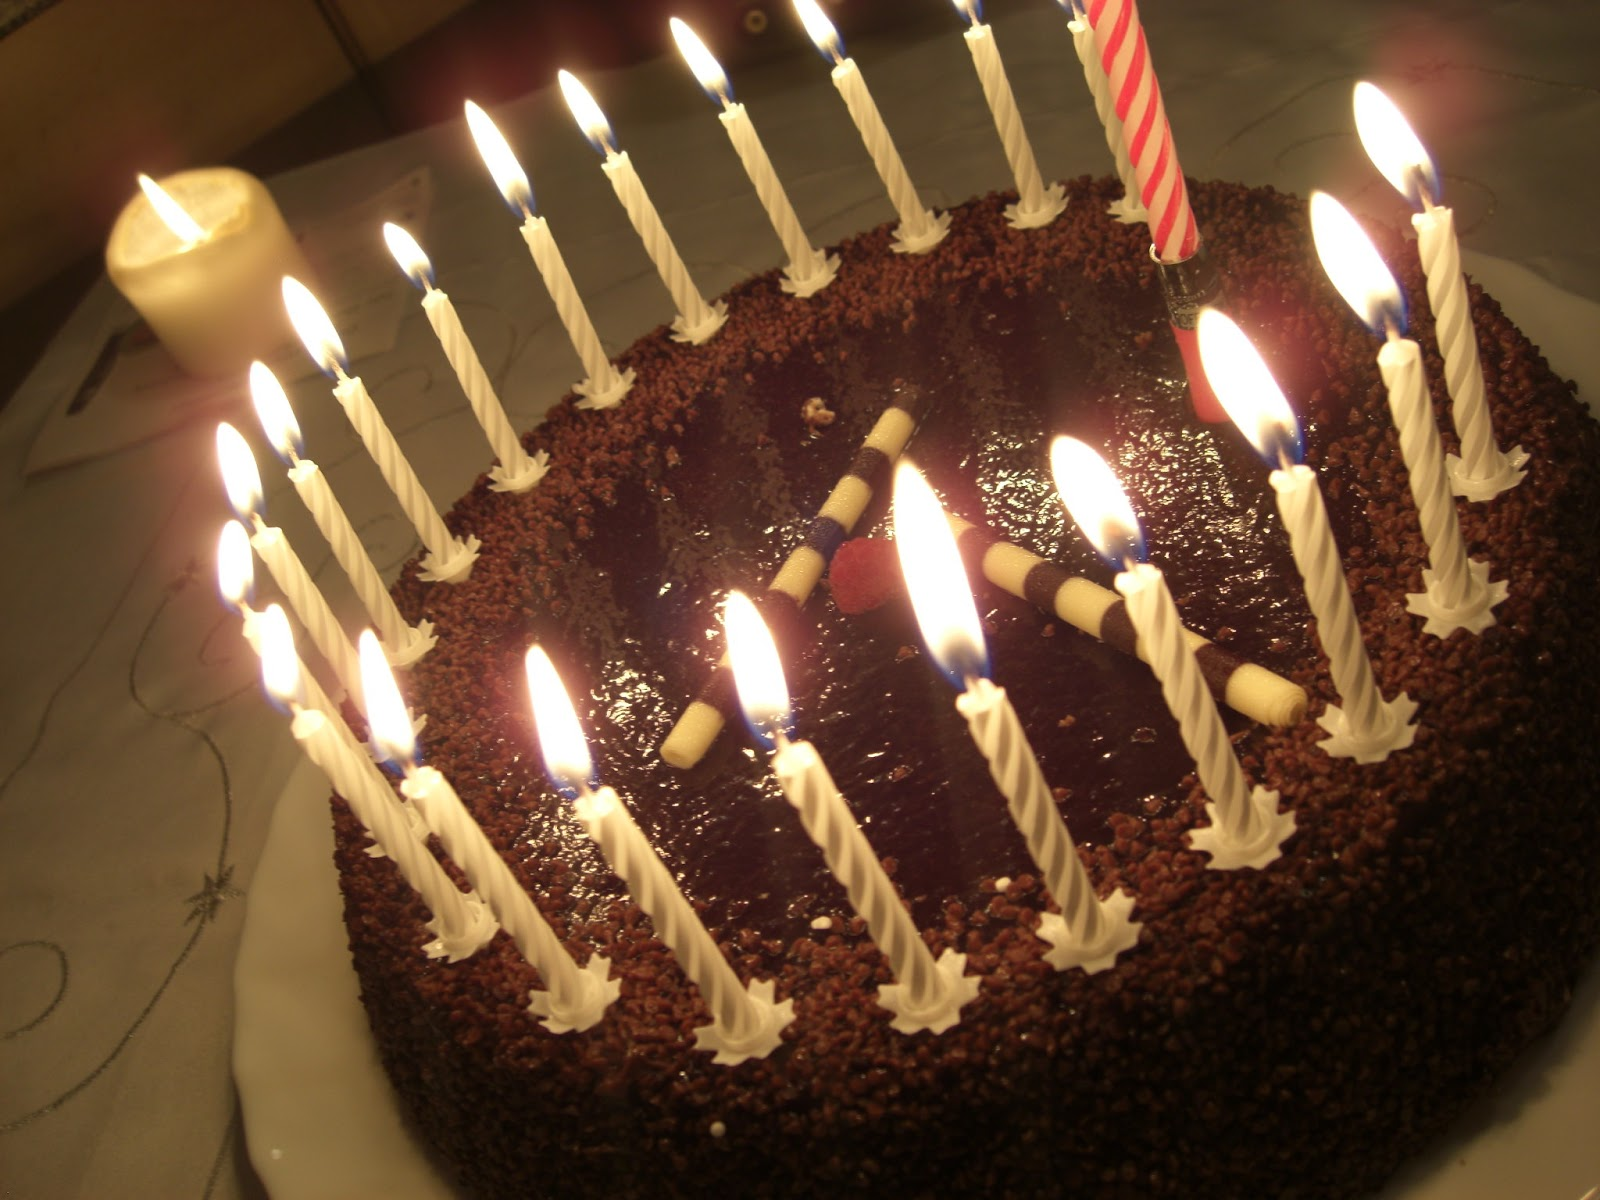 circleofchaos: My Birthday Cake And Advent Candles